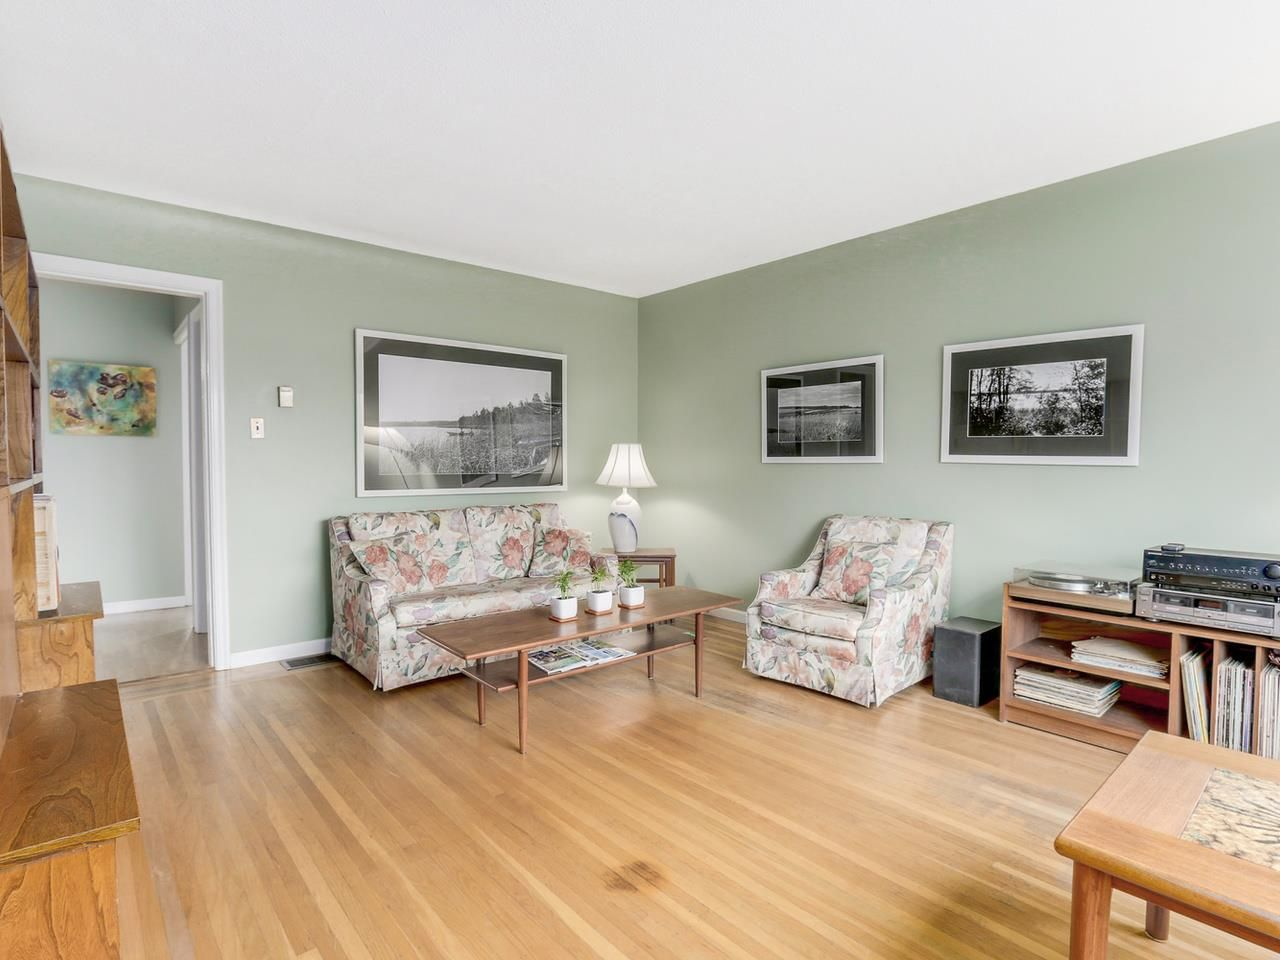 Main Photo: 26 E 54TH Avenue in Vancouver: South Vancouver House for sale (Vancouver East)  : MLS®# R2026654